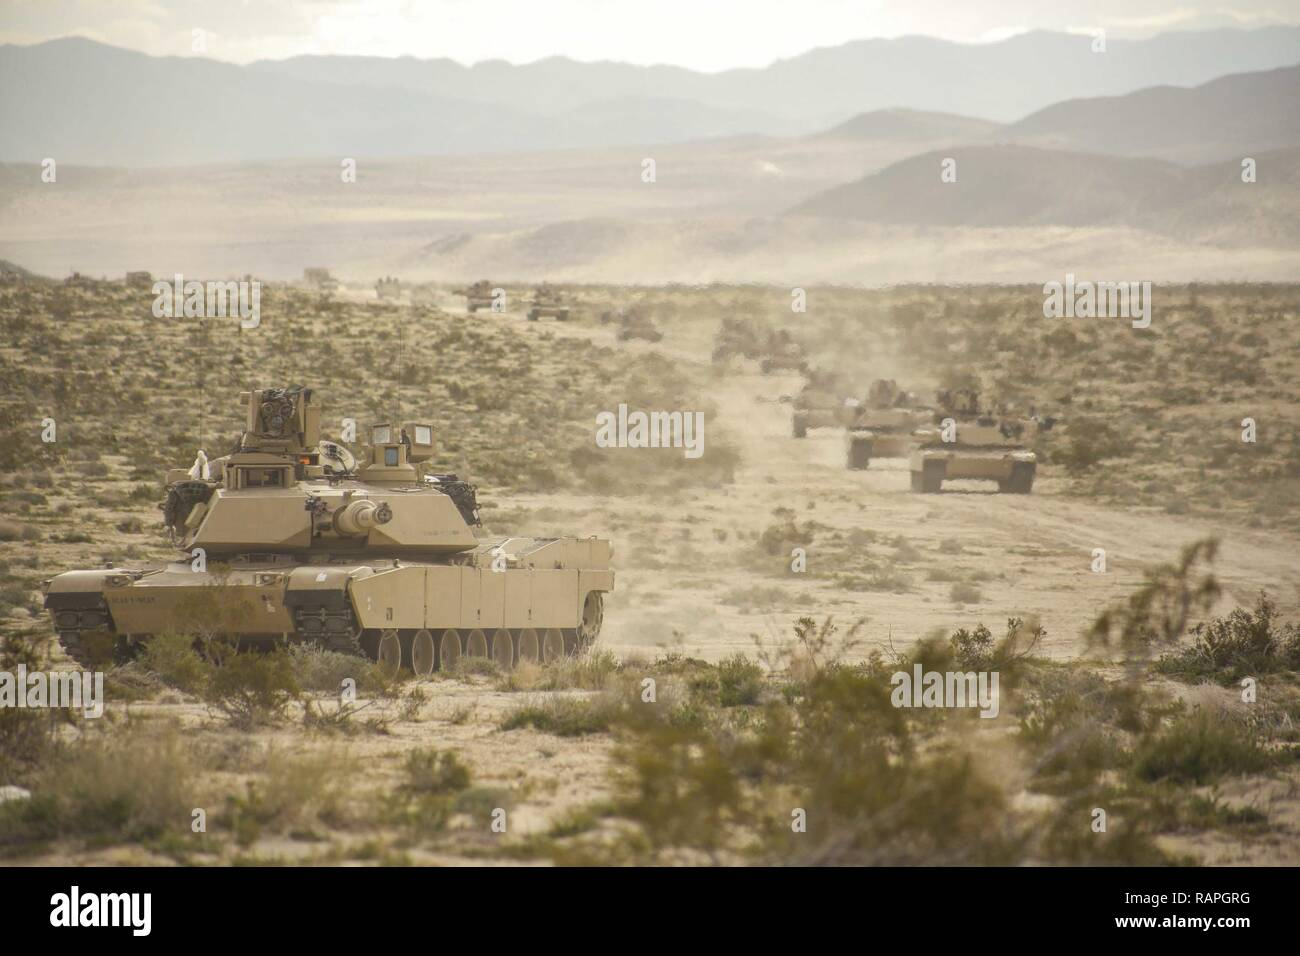 [Tomorrow's Earth] Chapitre I: Arrival - Page 2 Us-soldiers-assigned-to-the-2nd-brigade-1st-cavalry-division-move-a-caravan-of-abrams-tanks-through-a-stretch-of-desert-during-decisive-action-rotation-17-04-at-the-national-training-center-in-fort-irwin-calif-feb-26-2017-RAPGRG